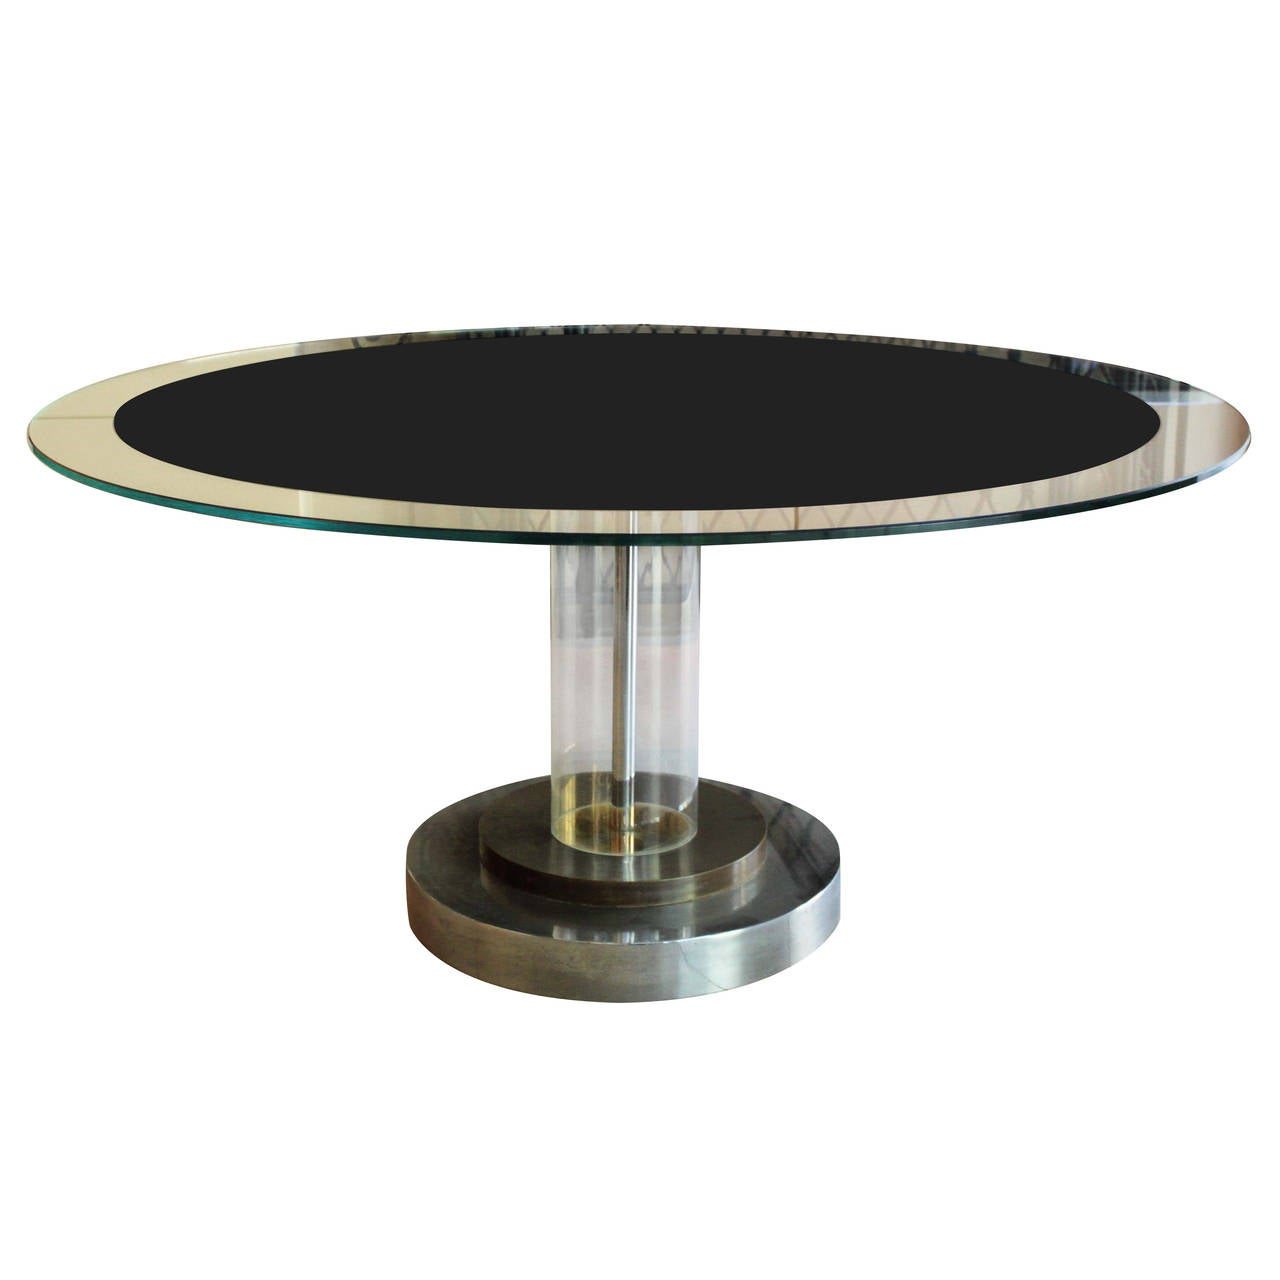 Lucite Pedestal Table Attributed to Romeo Rega at 1stdibs